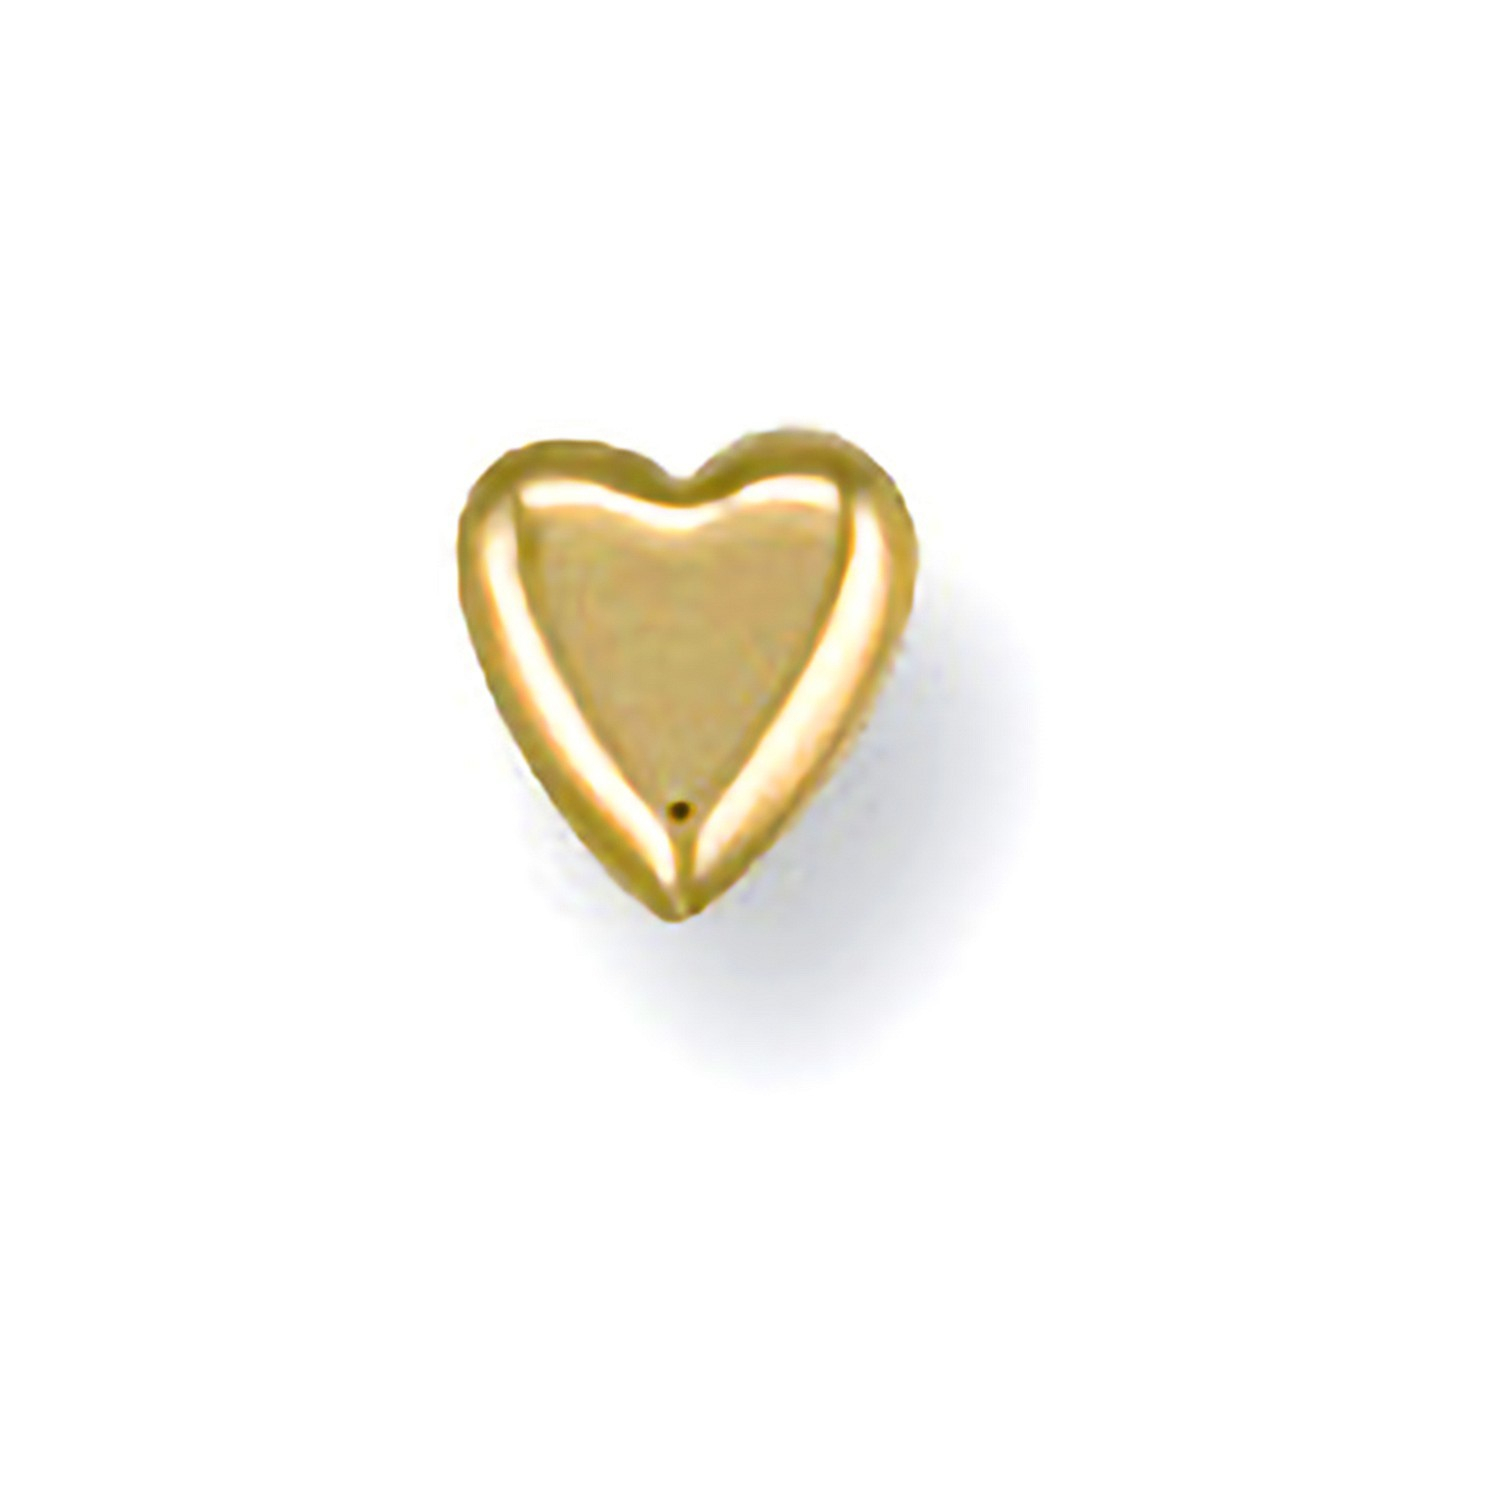 Y/G Heart Nose Stud